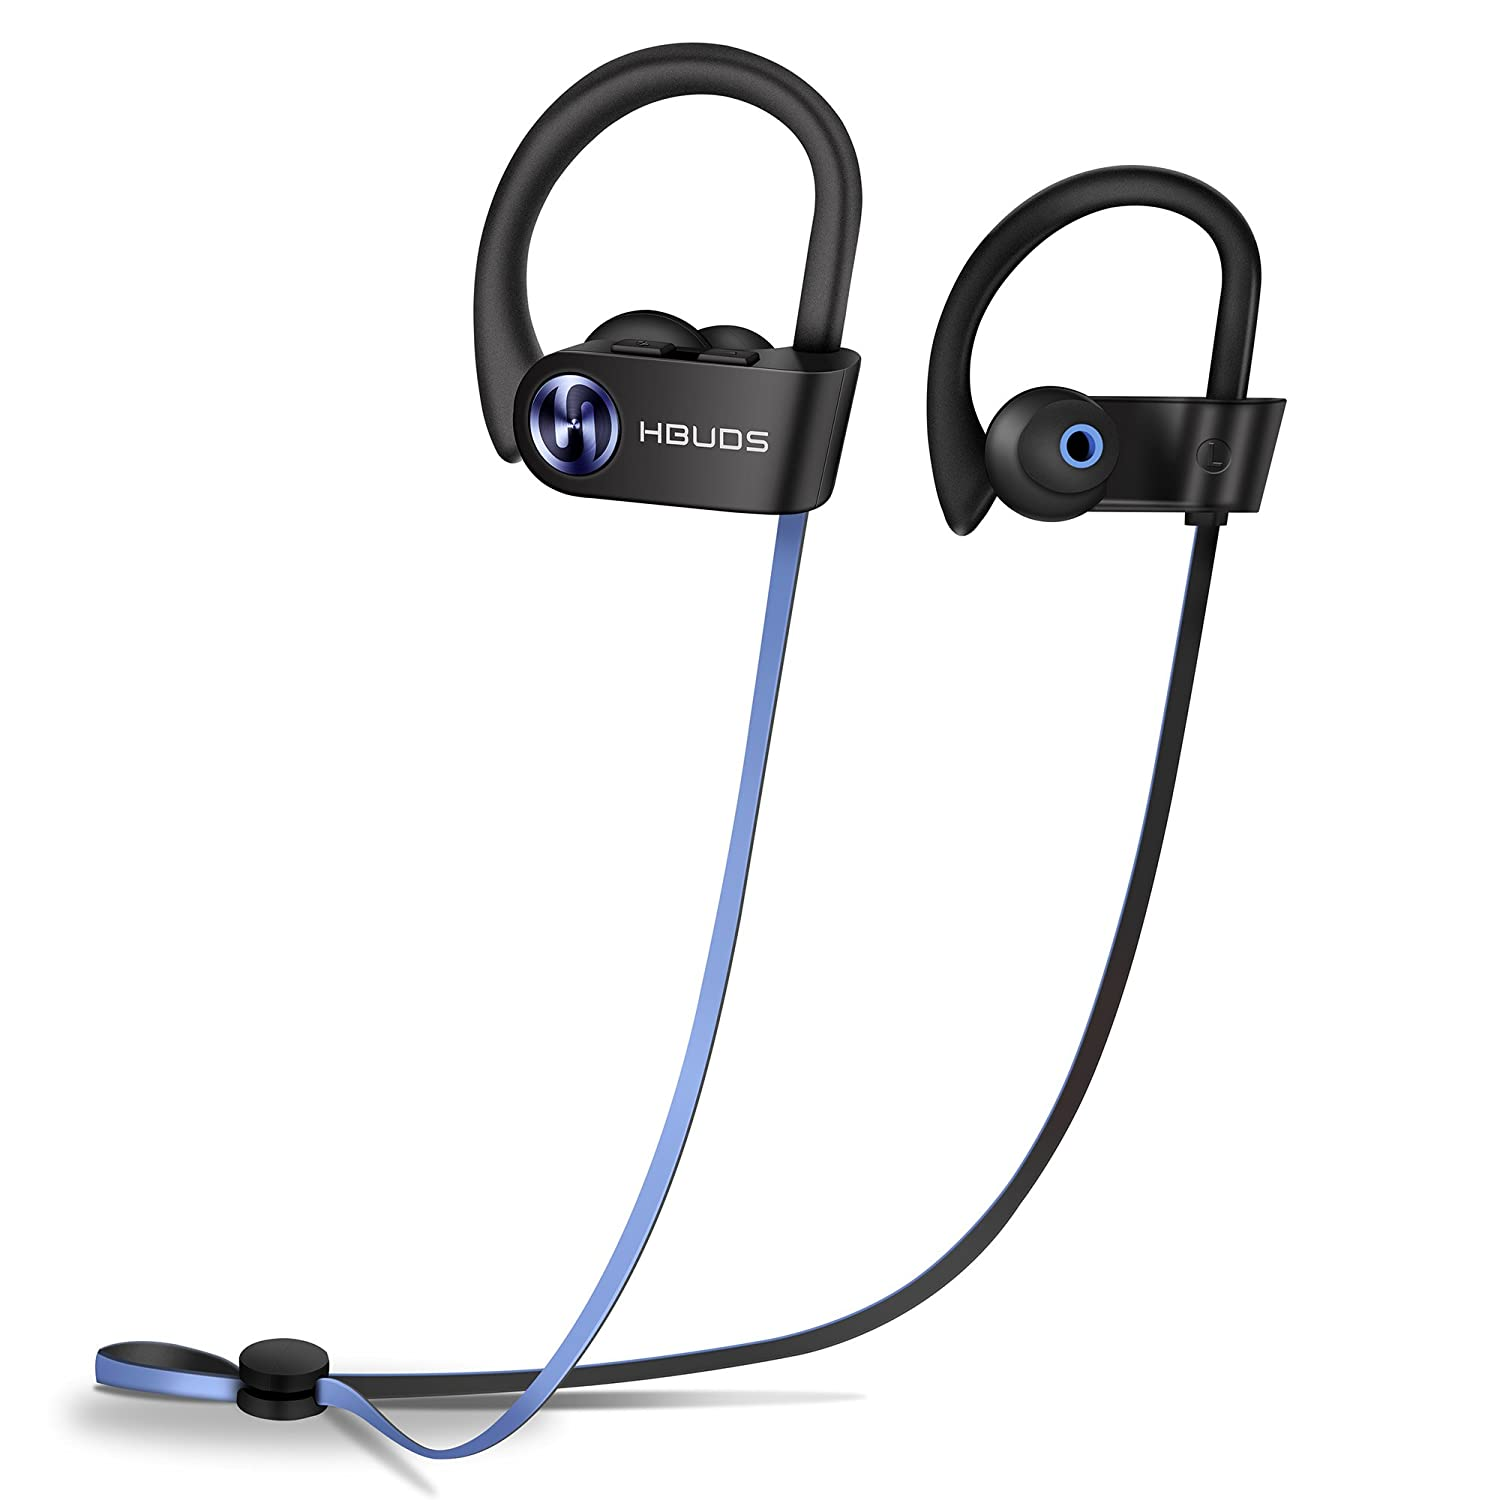 Bluetooth Earphones, Sports Headphones Hbuds H1 IPX7 Sweaterproof Bluetooth 4.1 in-Ear Earbuds with Mic for Running, 9 Hour Battery & Noise Cancelling Wireless Eardphones